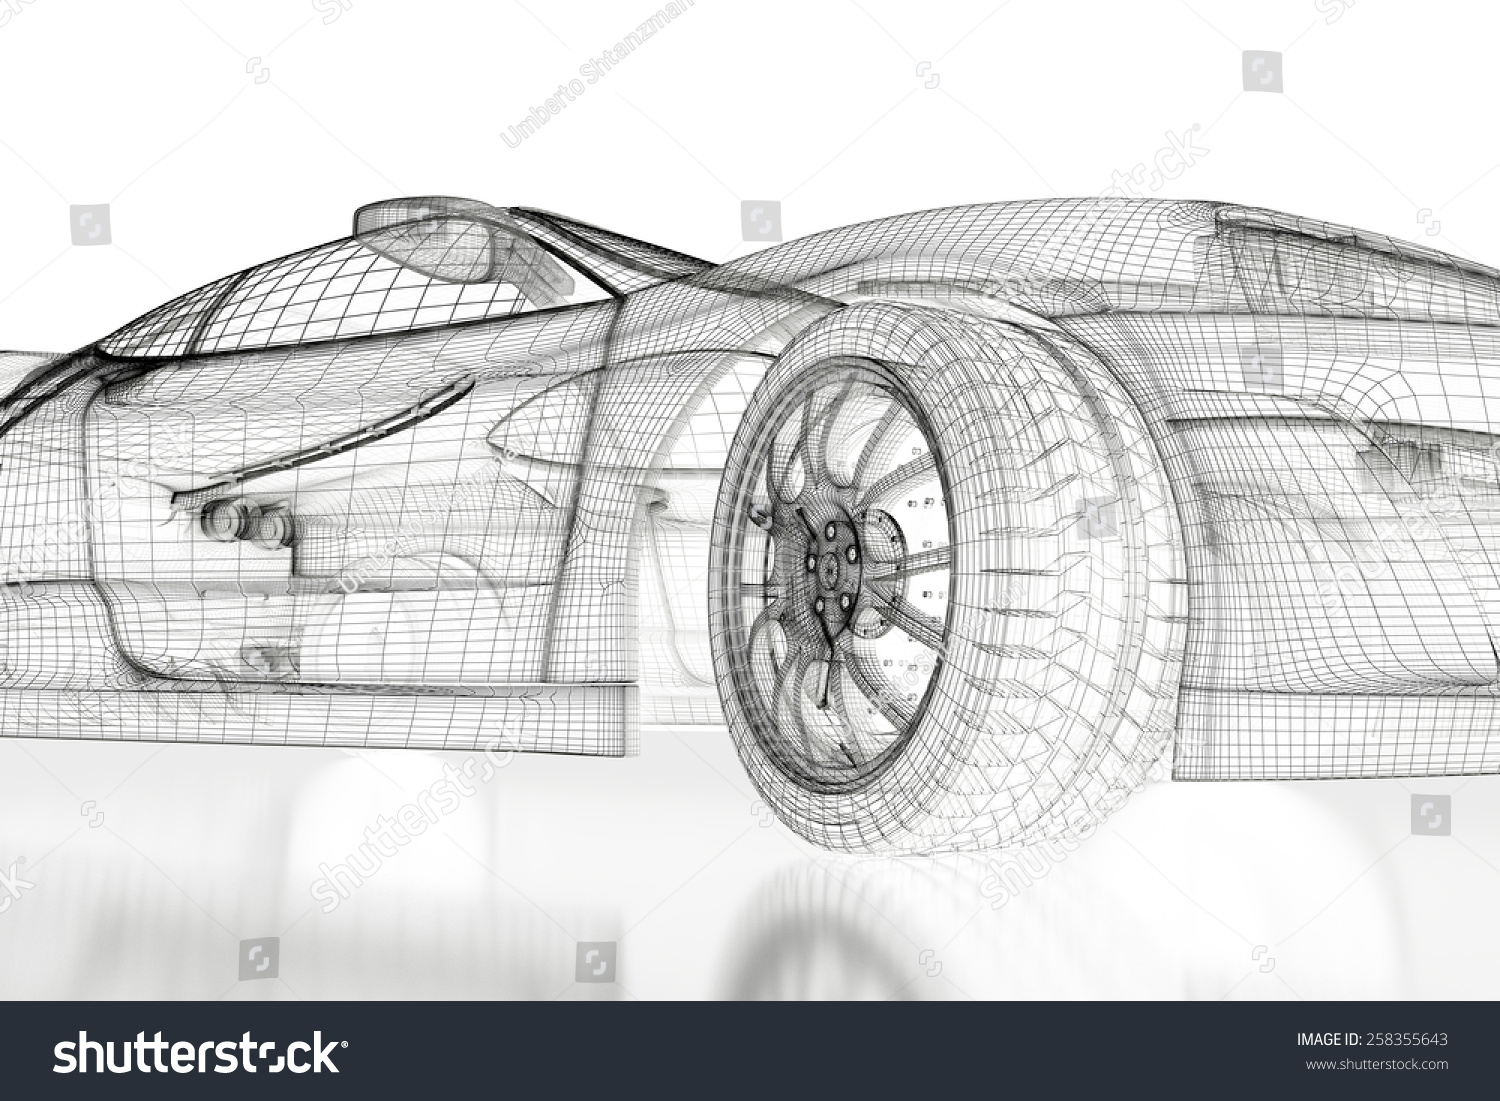 Car vehicle 3d blueprint model on a white background 3d rendered id 258355643 malvernweather Choice Image